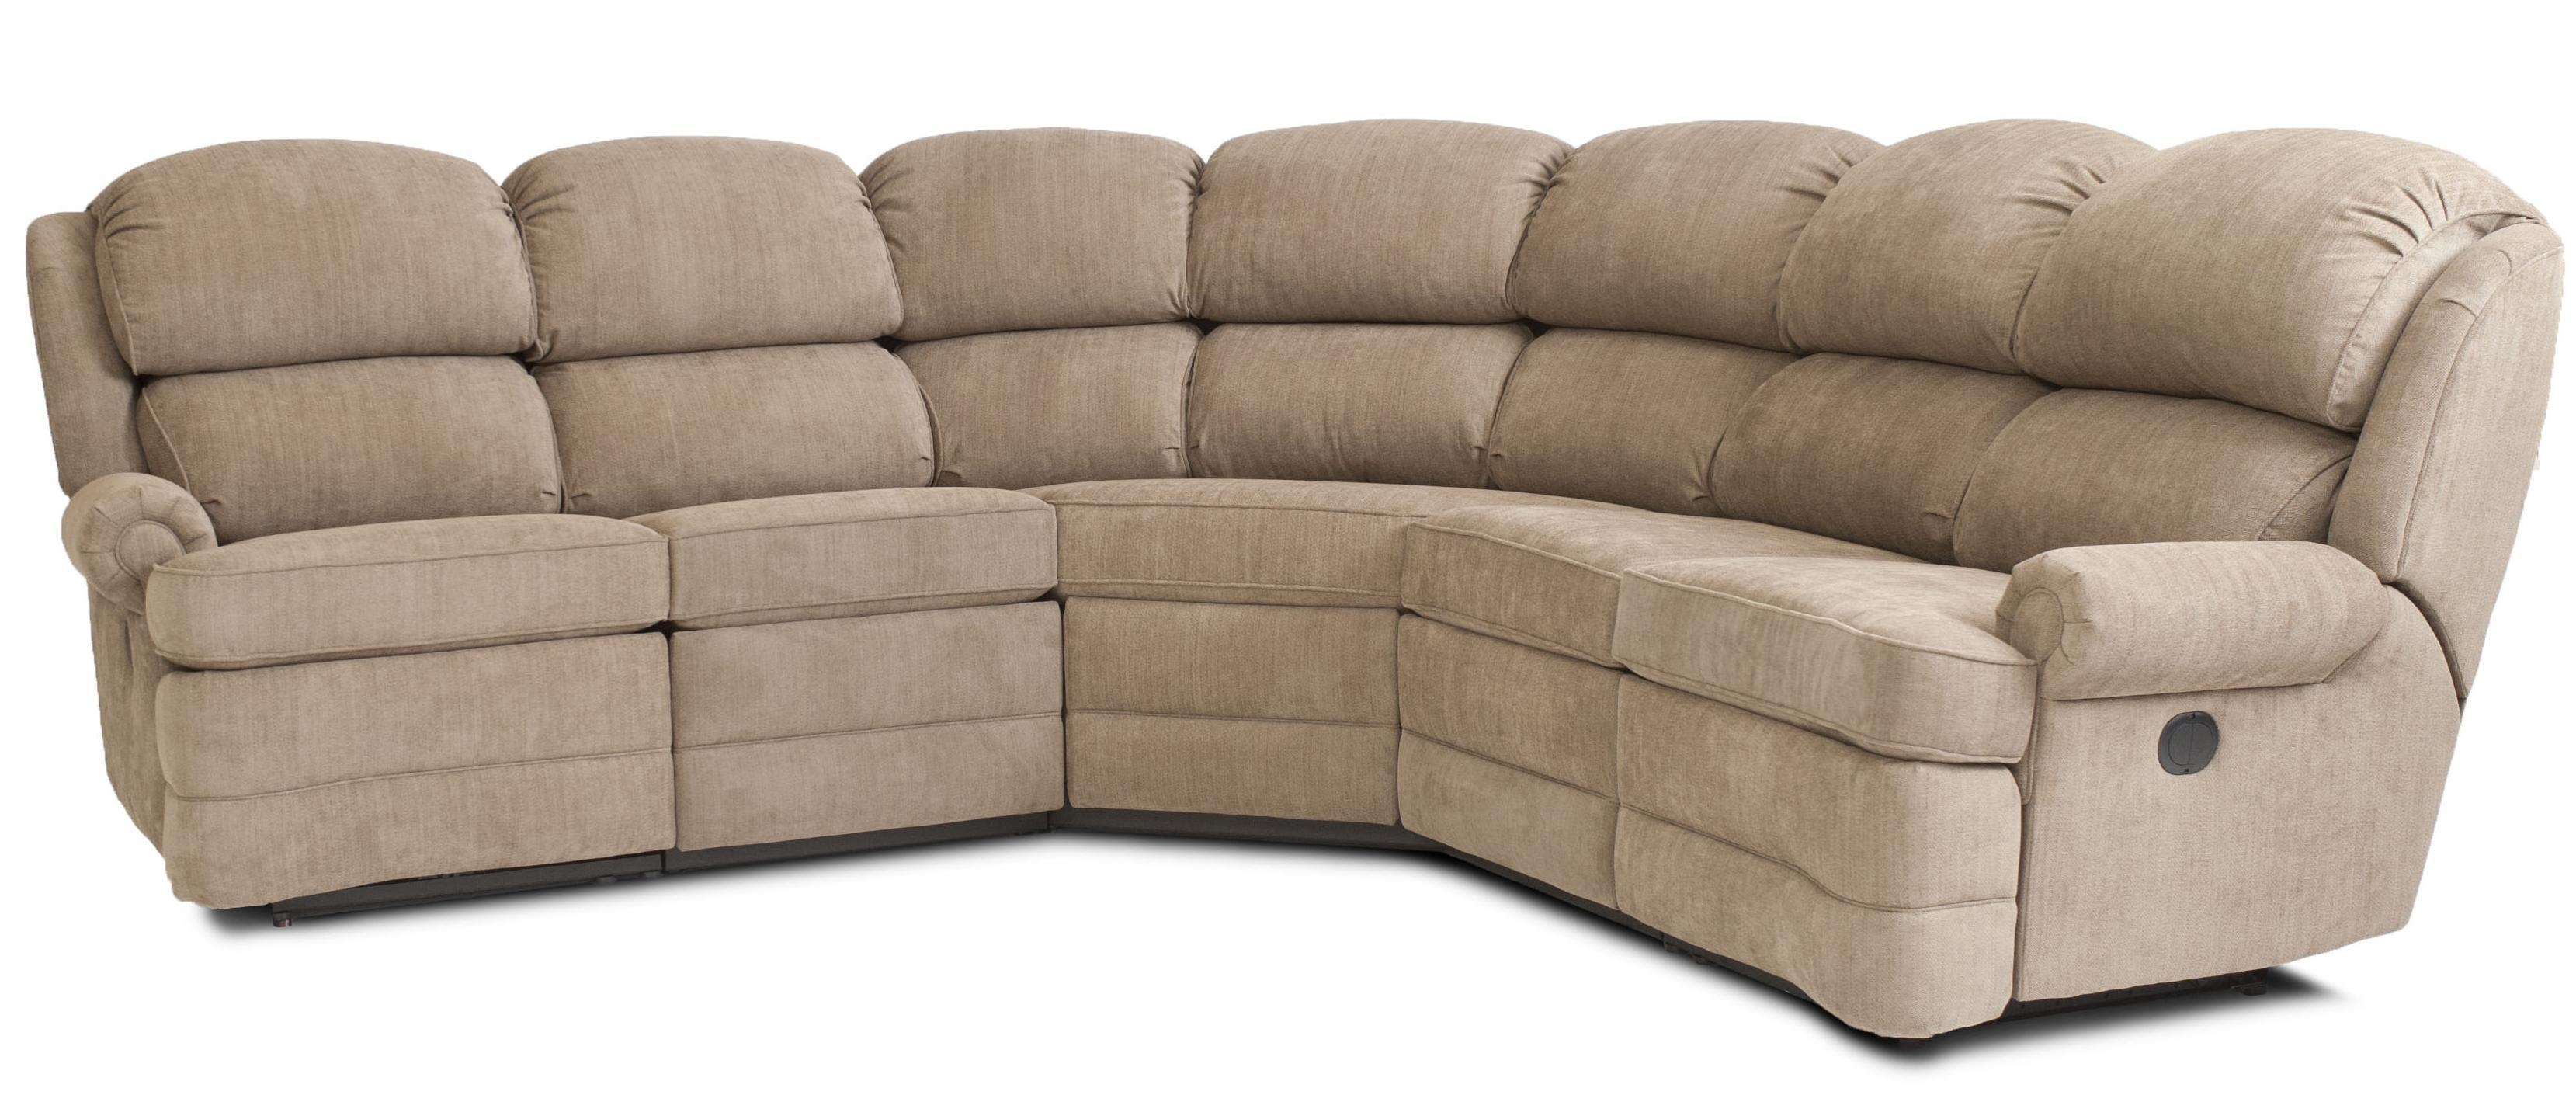 Furniture: Jedd Fabric Reclining Sectional Sofa | Sectional Throughout Jedd Fabric Reclining Sectional Sofa (Image 11 of 20)